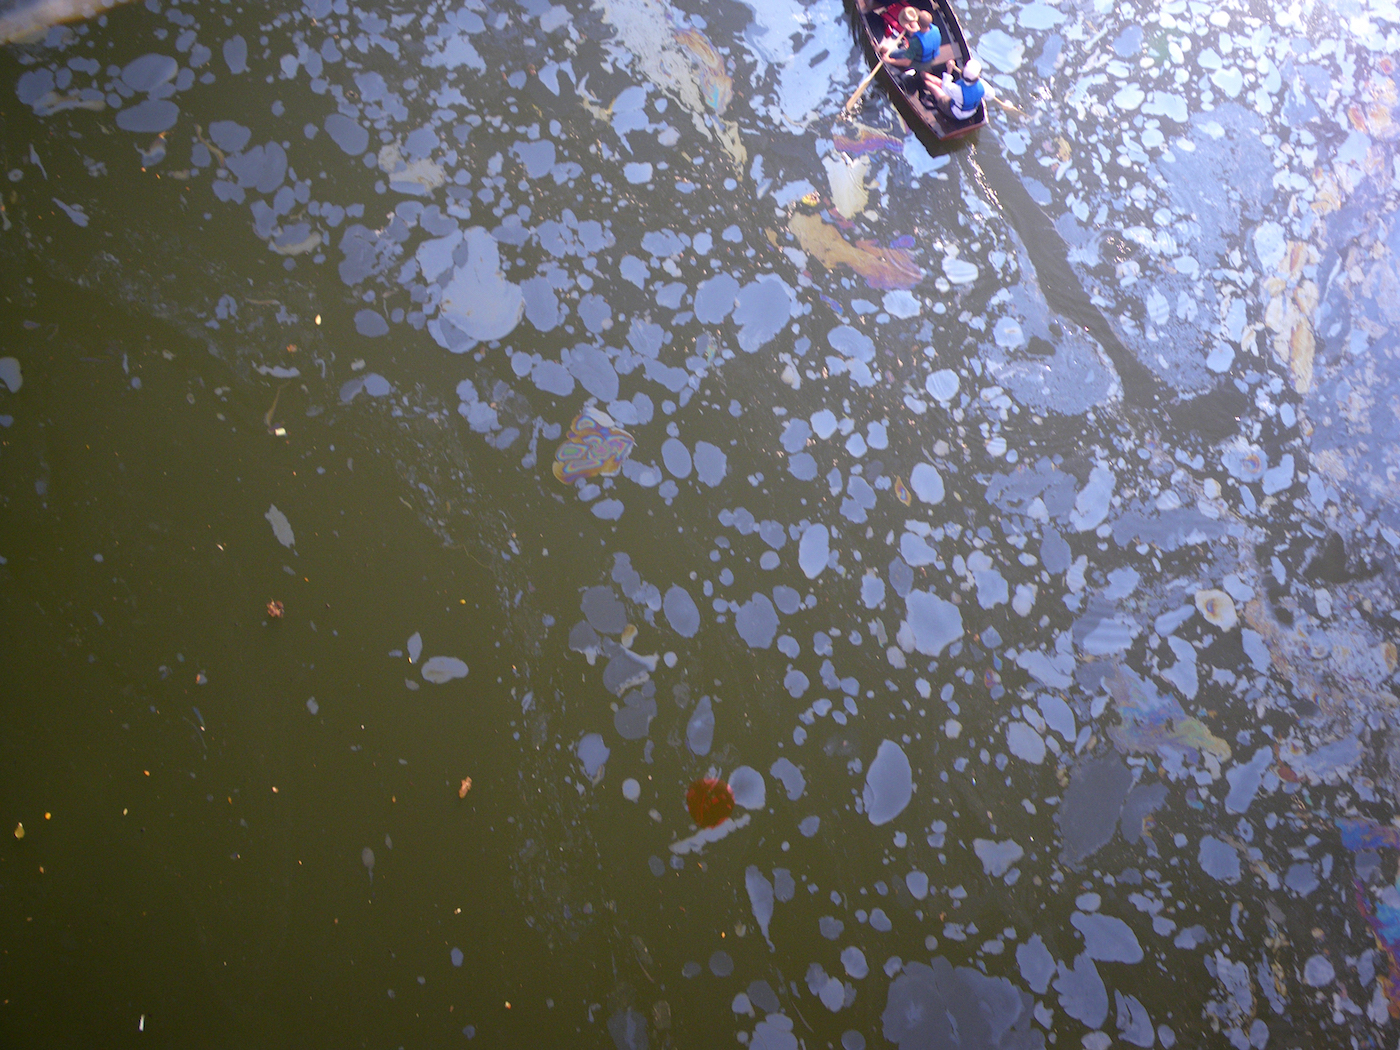 """Marie Lorenz, """"The Gowanus Canal Aerial View from The Tide and Current Taxi"""" (2005 – present), digital photograph (courtesy of the artist)"""